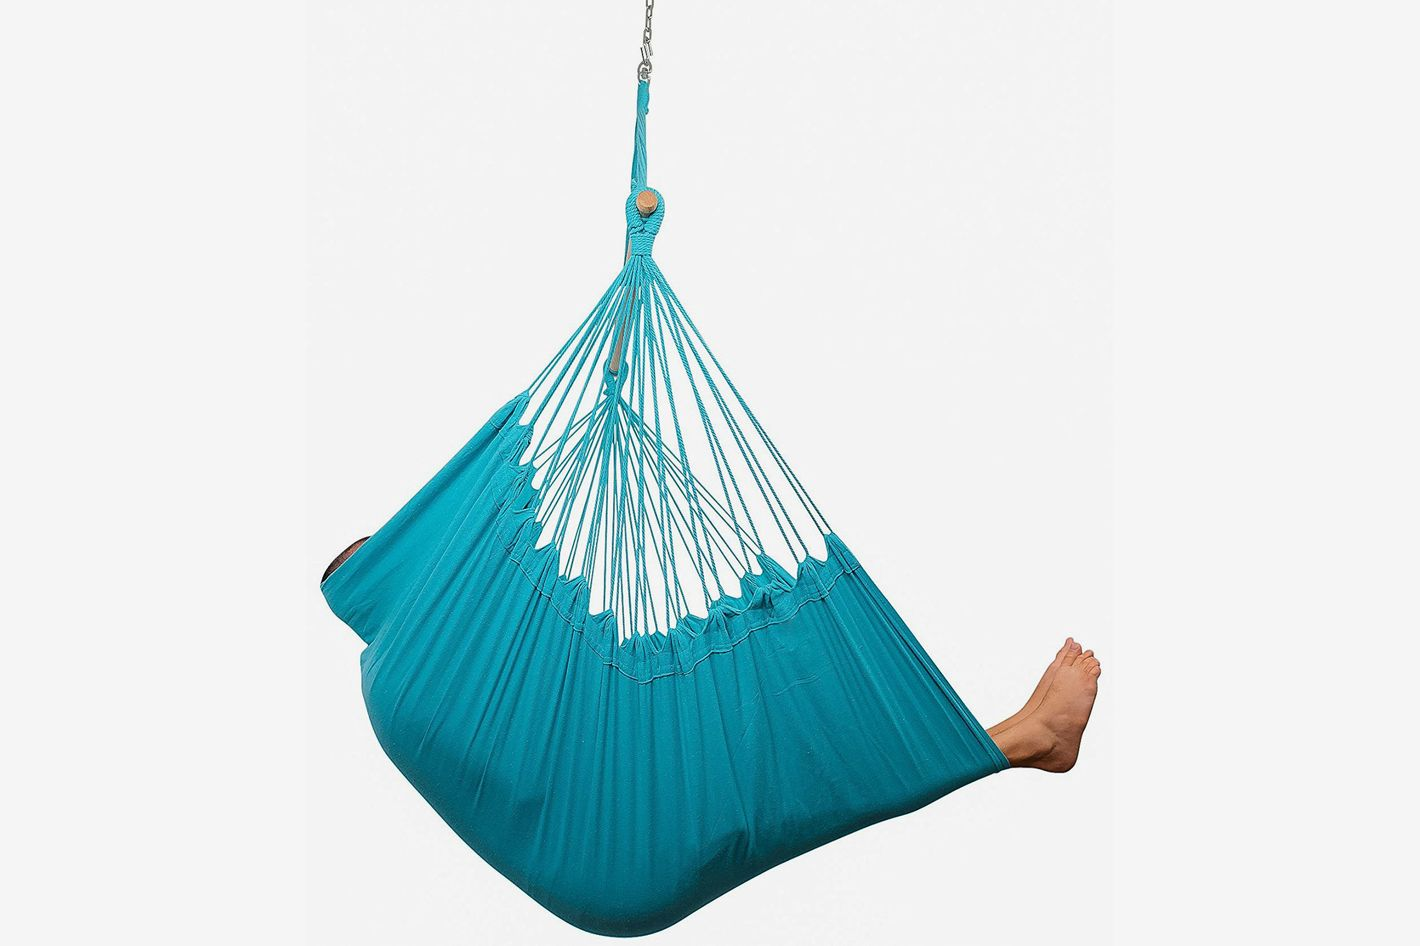 Hammock Sky XXL Hammock Chair Swing